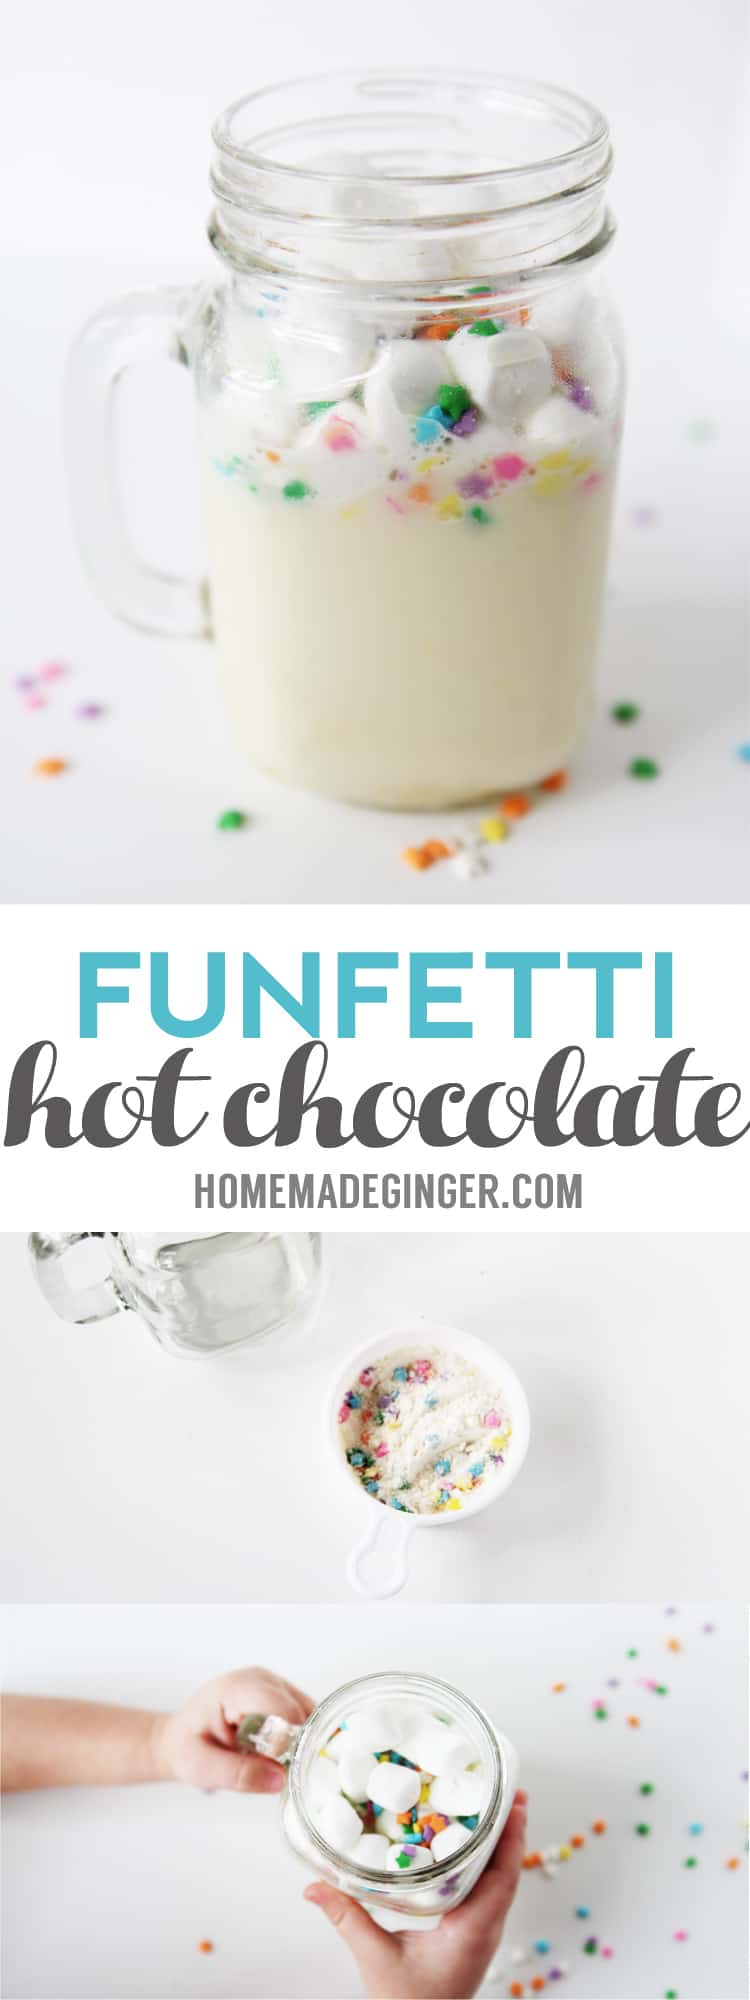 INCREDIBLE funfetti hot chocolate mix recipe! This homemade hot chocolate is so cute and crazy good!